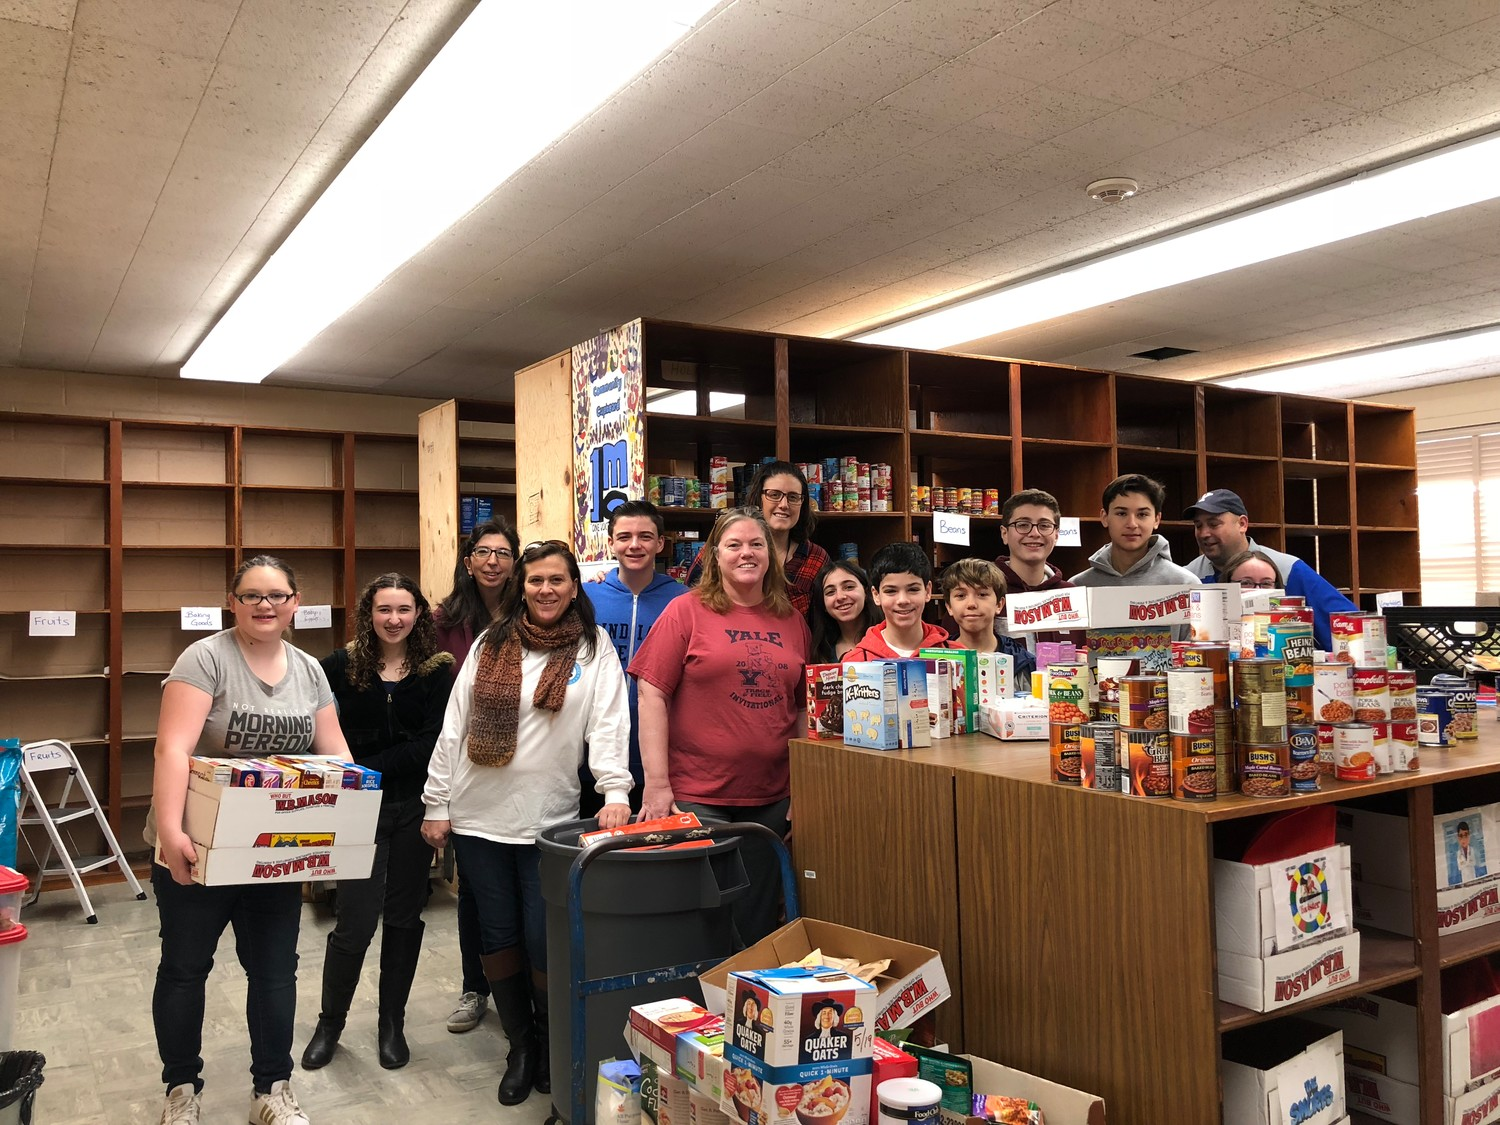 Community Cupboard organizers Karin McMahon, in scarf; Darlene Boden, in red T-shirt; and Catrina Christensen, behind her, with student volunteers, recently collected donations for the Cupboard's expansion effort.